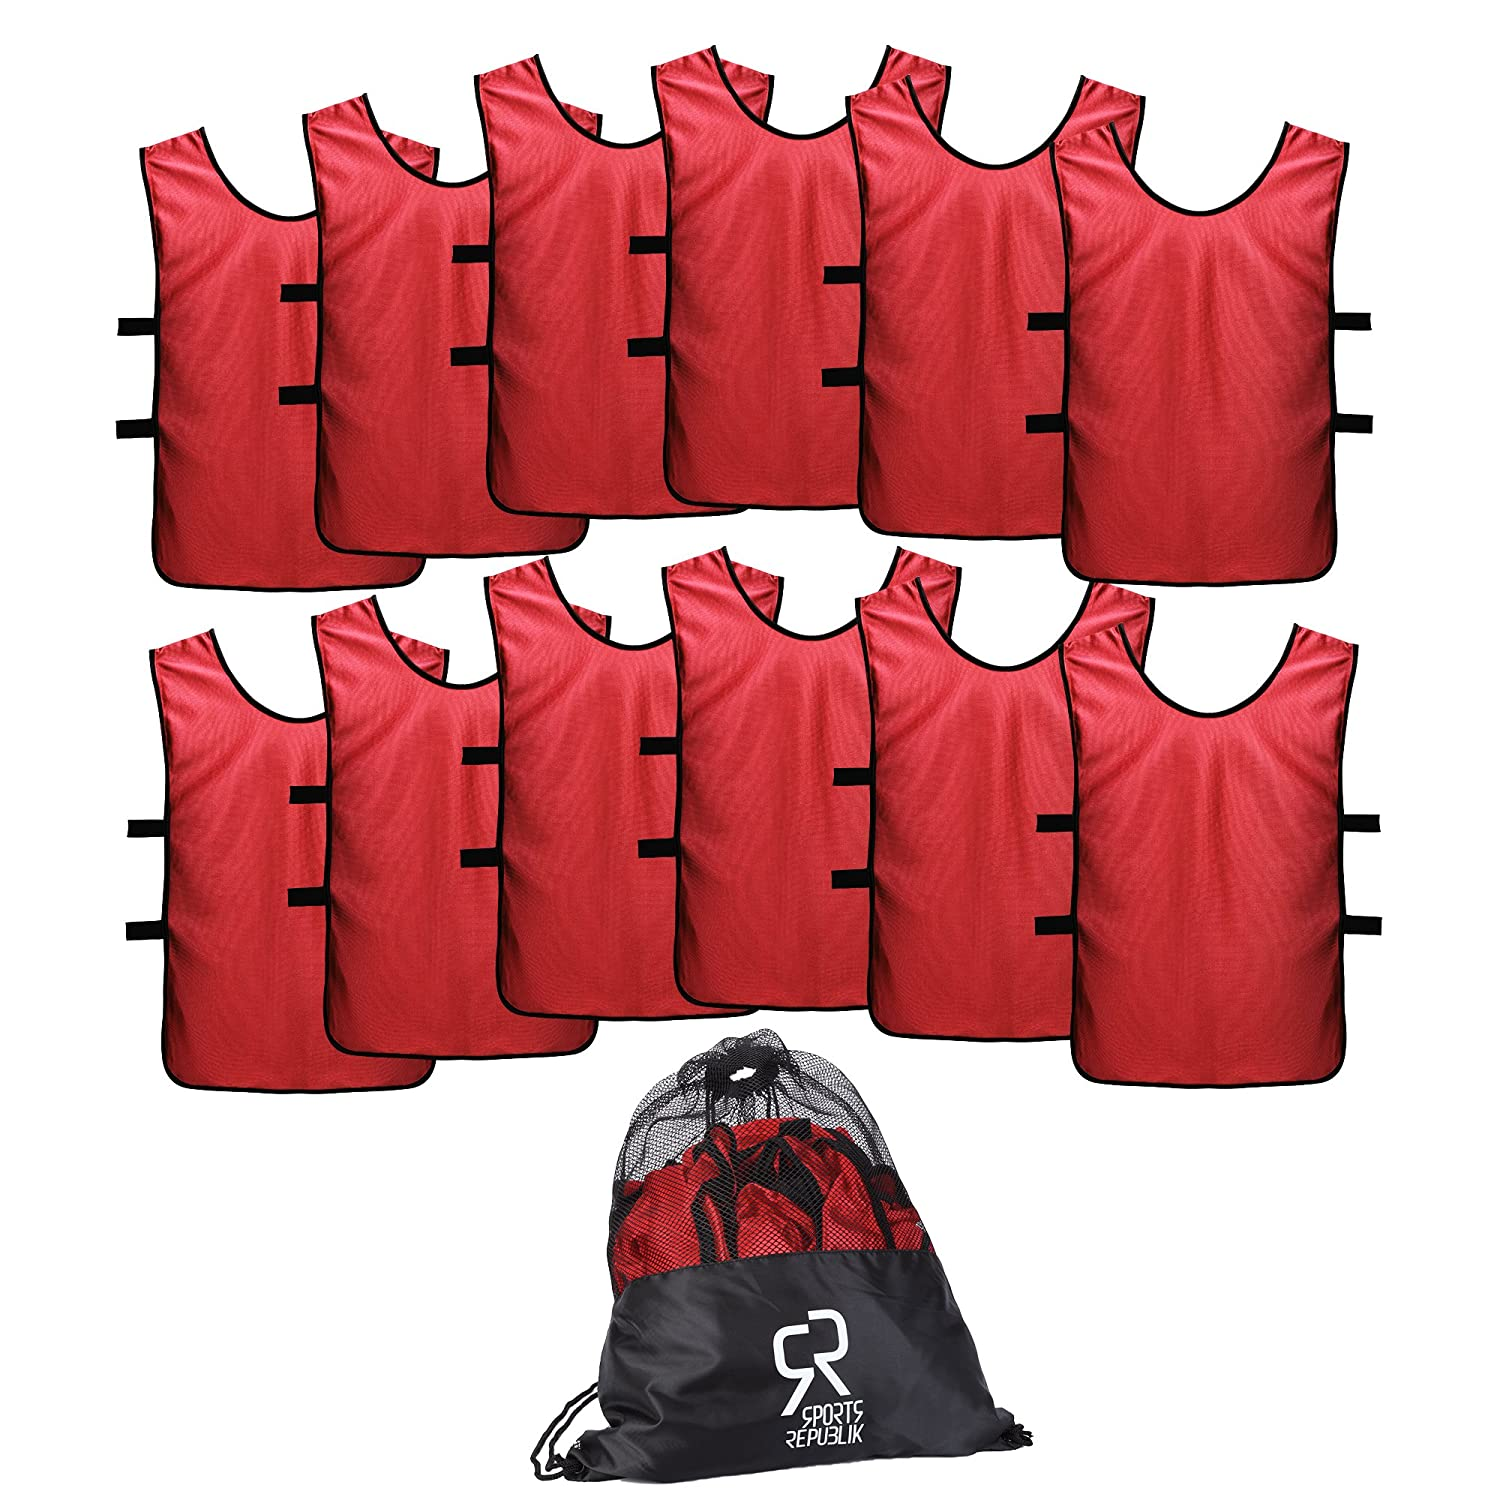 Red XL (Adult 180lbs+) SportsRepublik Pinnies Scrimmage Vests for Kids, Youth and Adults (12Pack)  Soccer Pennies